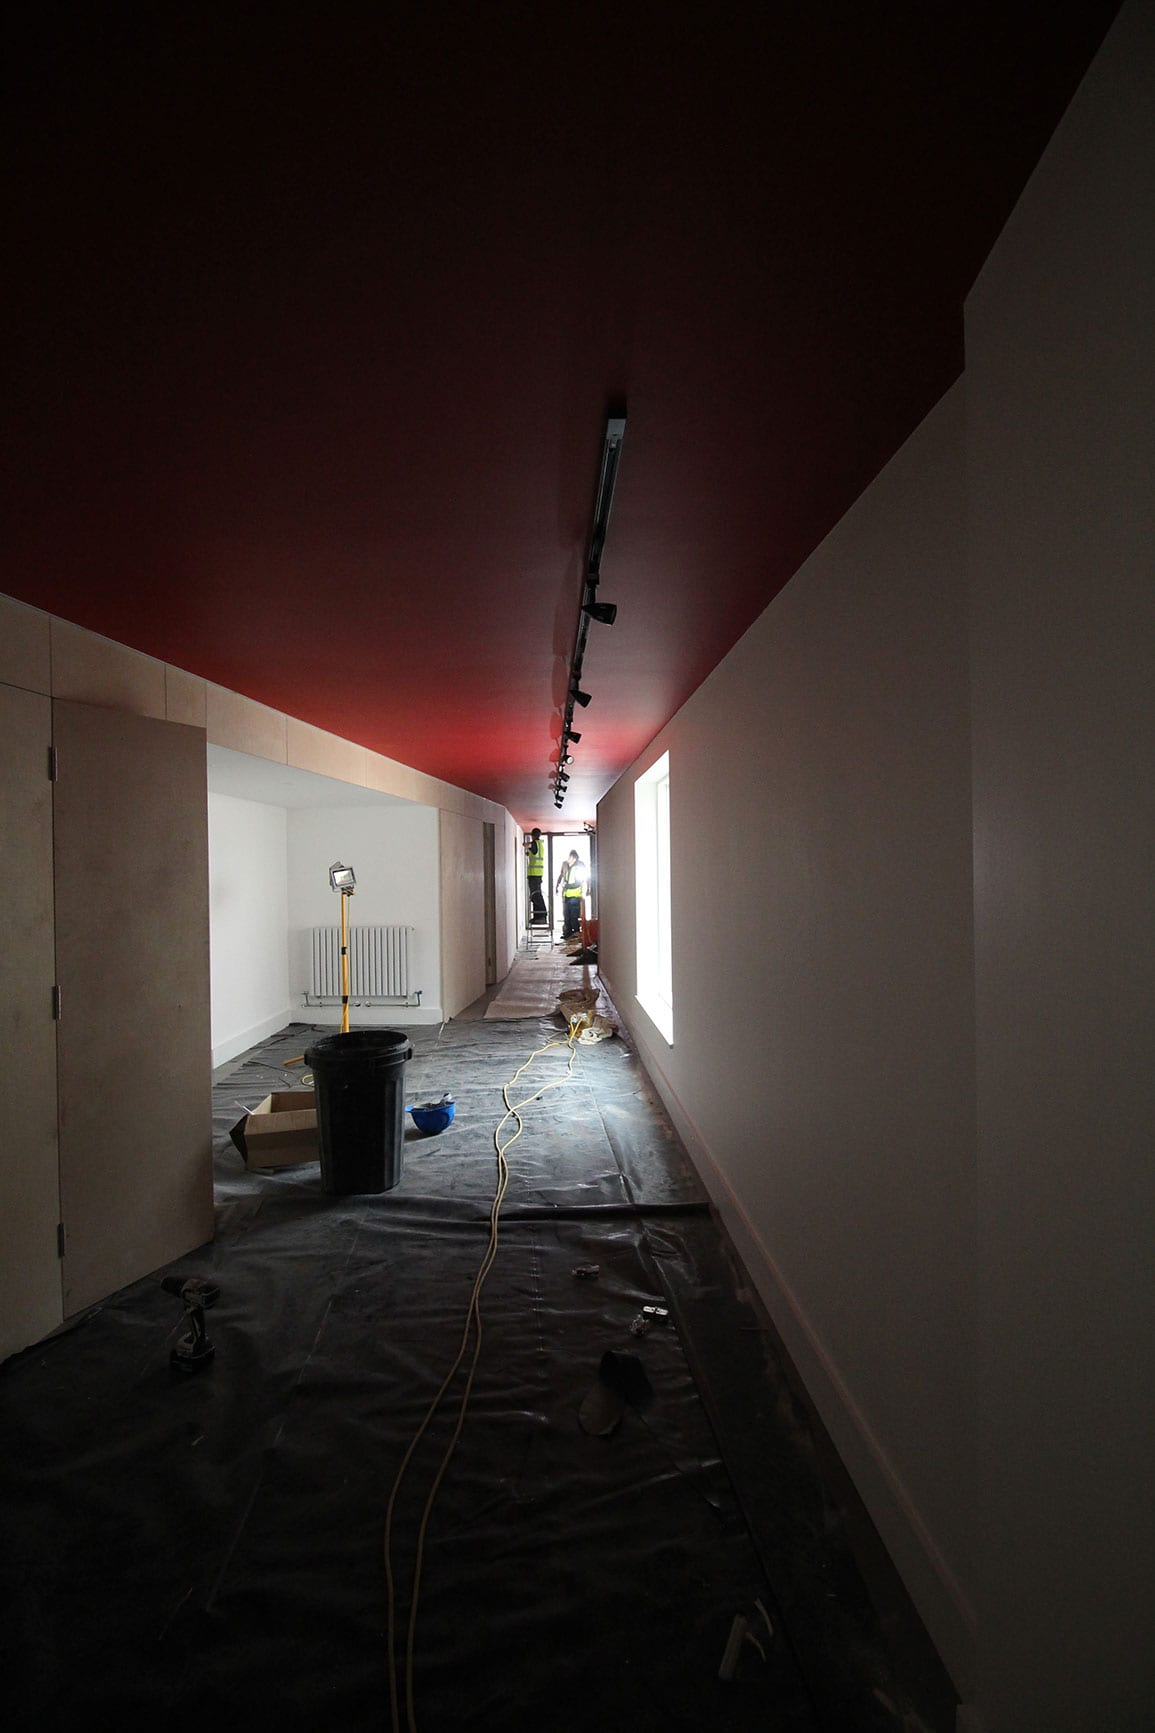 Architectural Emporium Walk the plank in progress site photo hallway